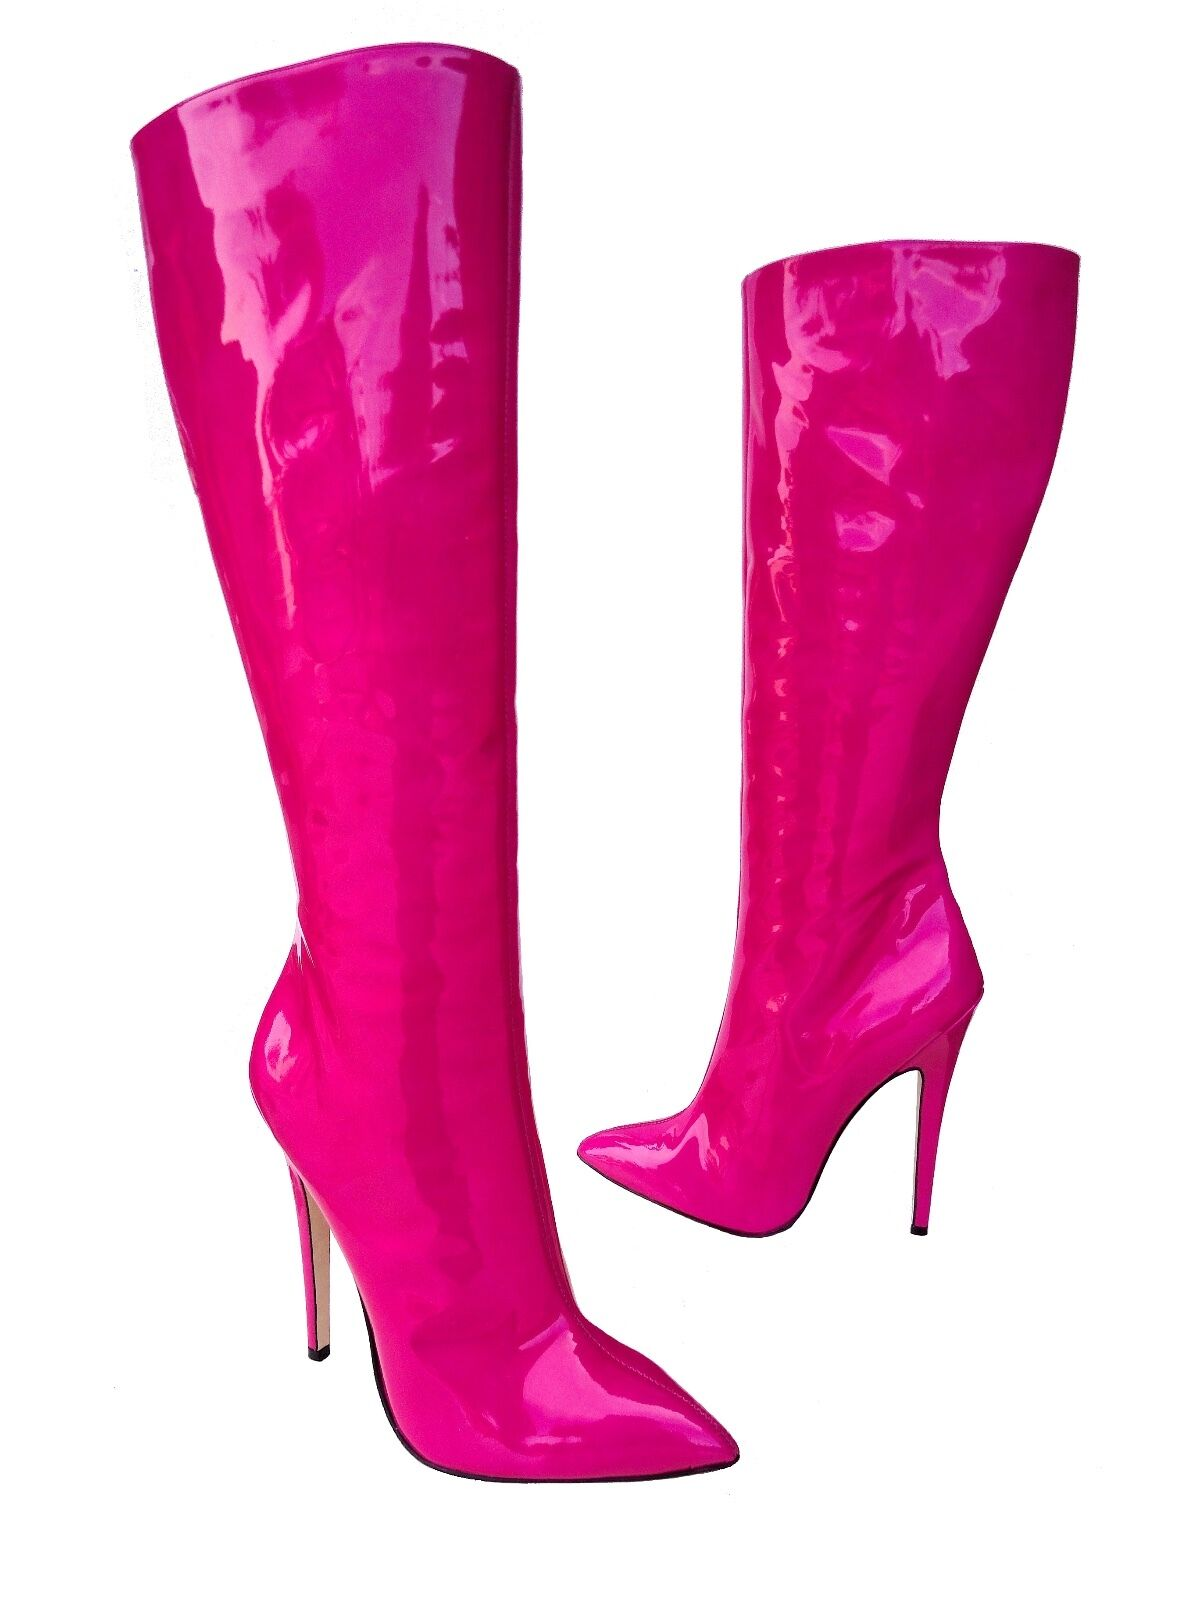 Grandes zapatos con descuento CQ COUTURE KNEE HIGHEST HEELS BOOTS STIEFEL STIVALI LEATHER FUXIA ROSA PINK 37